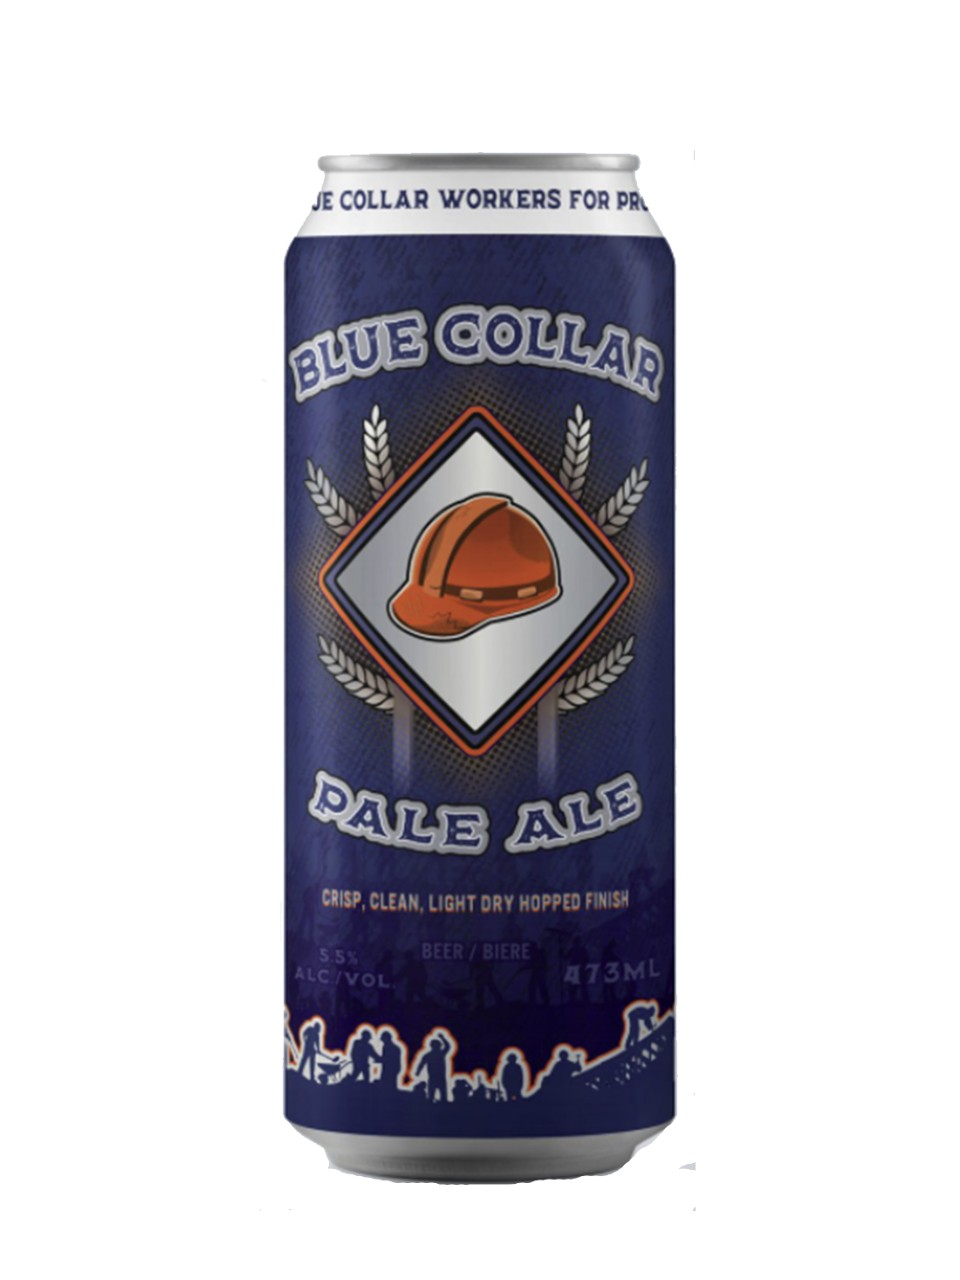 The Hamilton Brewery Blue Collar Pale Ale